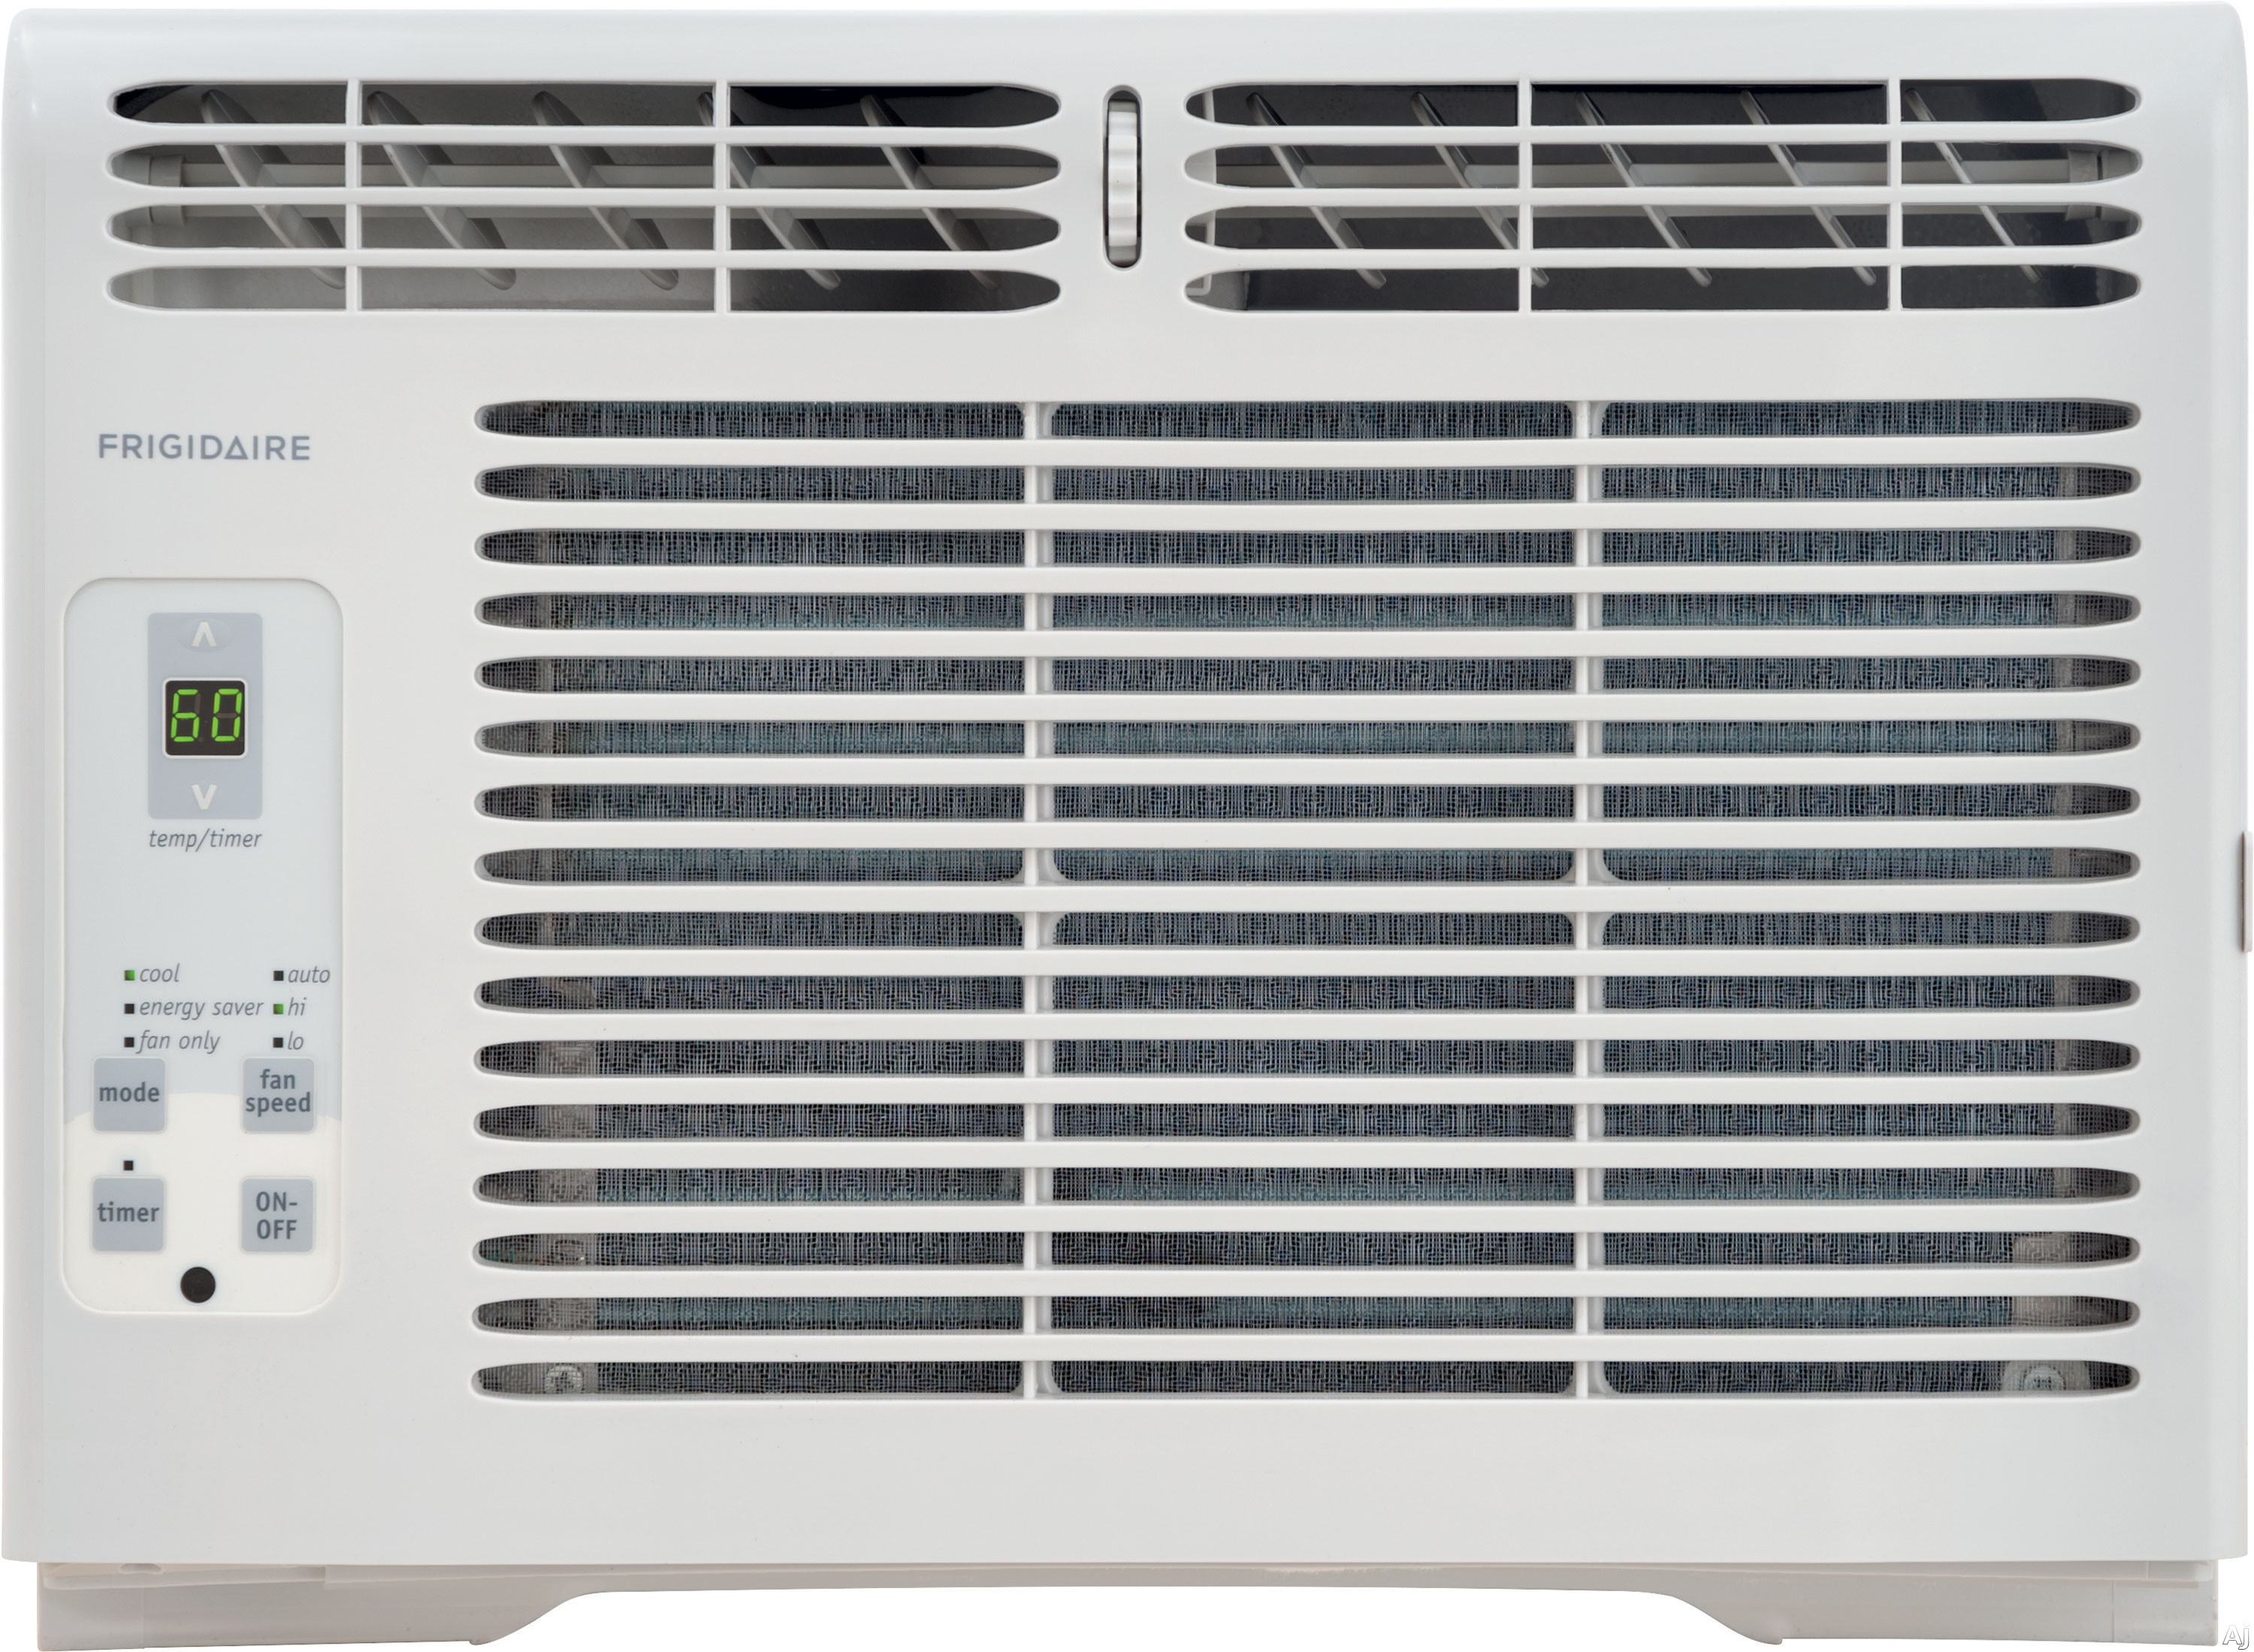 Home > Air Conditioners > Room Air Conditioners > FFRA0522Q1 #59614D